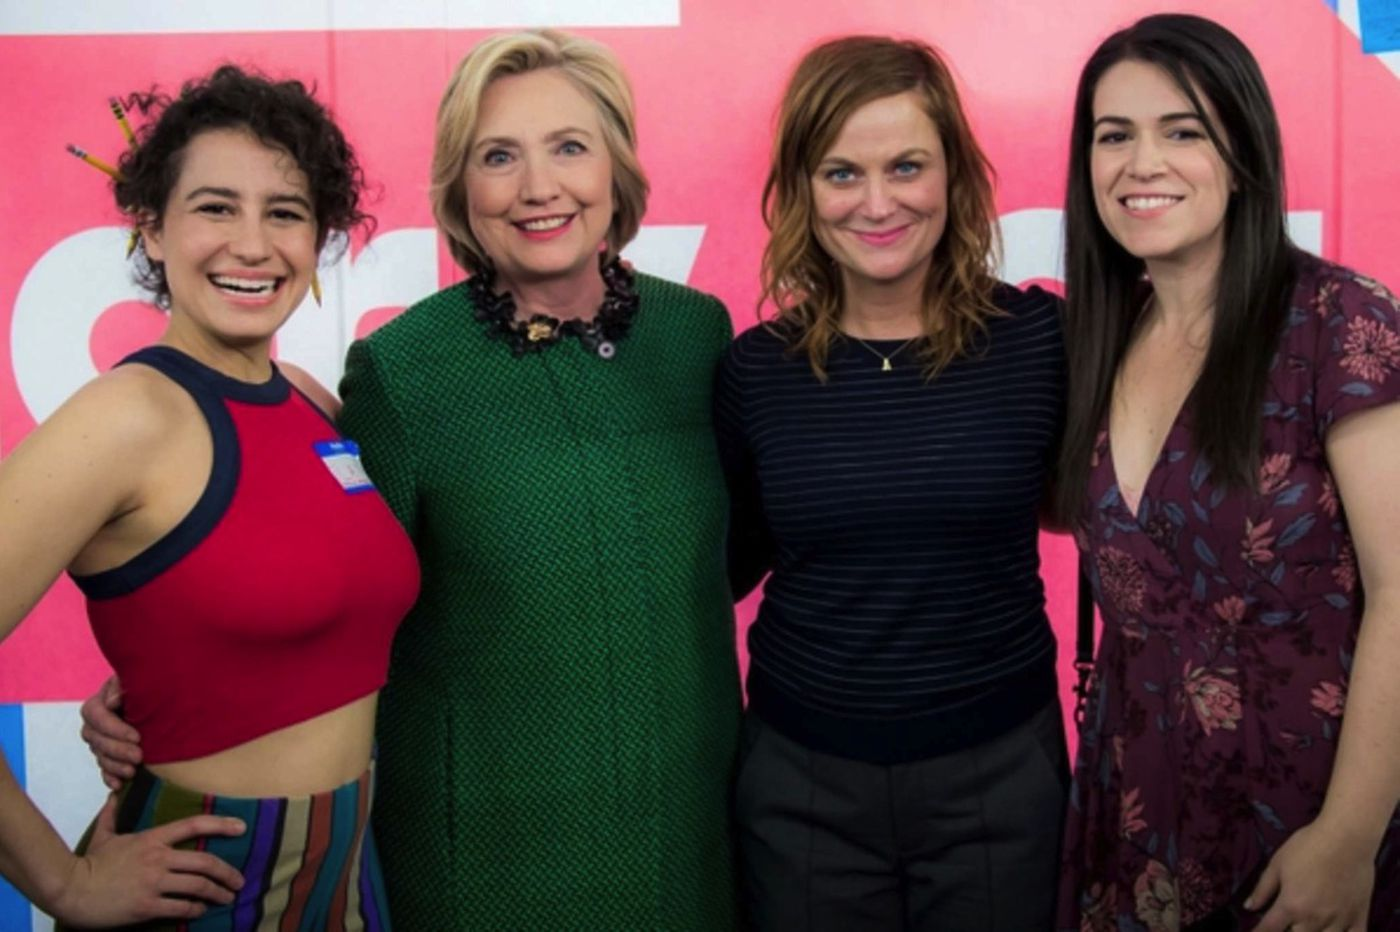 Sideshow: Clinton hangs with 'Broad City' broads